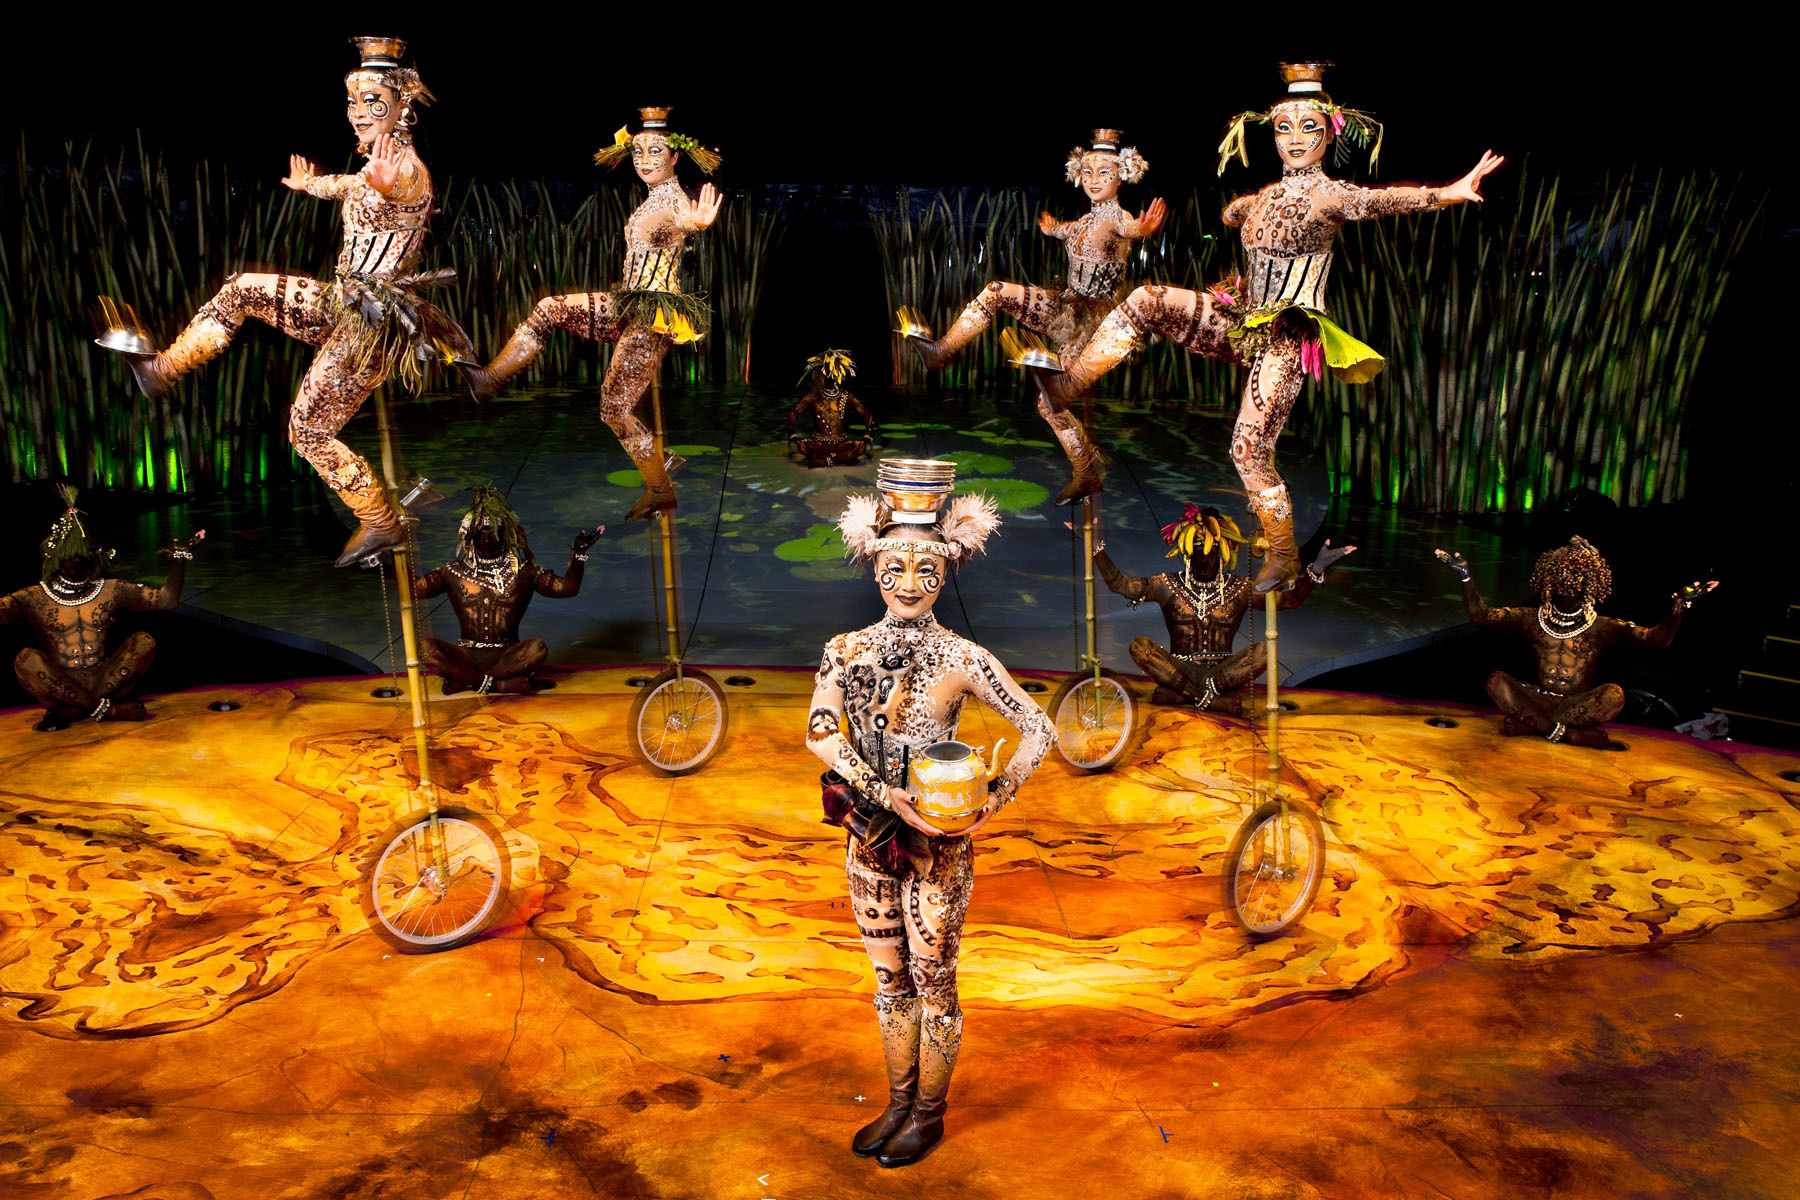 ユニサイクル・アンド・ボウル 1 UNICYCLES WITH BOWLS Photo: OSA Images Costumes: Kym Barrett © 2010 Cirque du Soleil